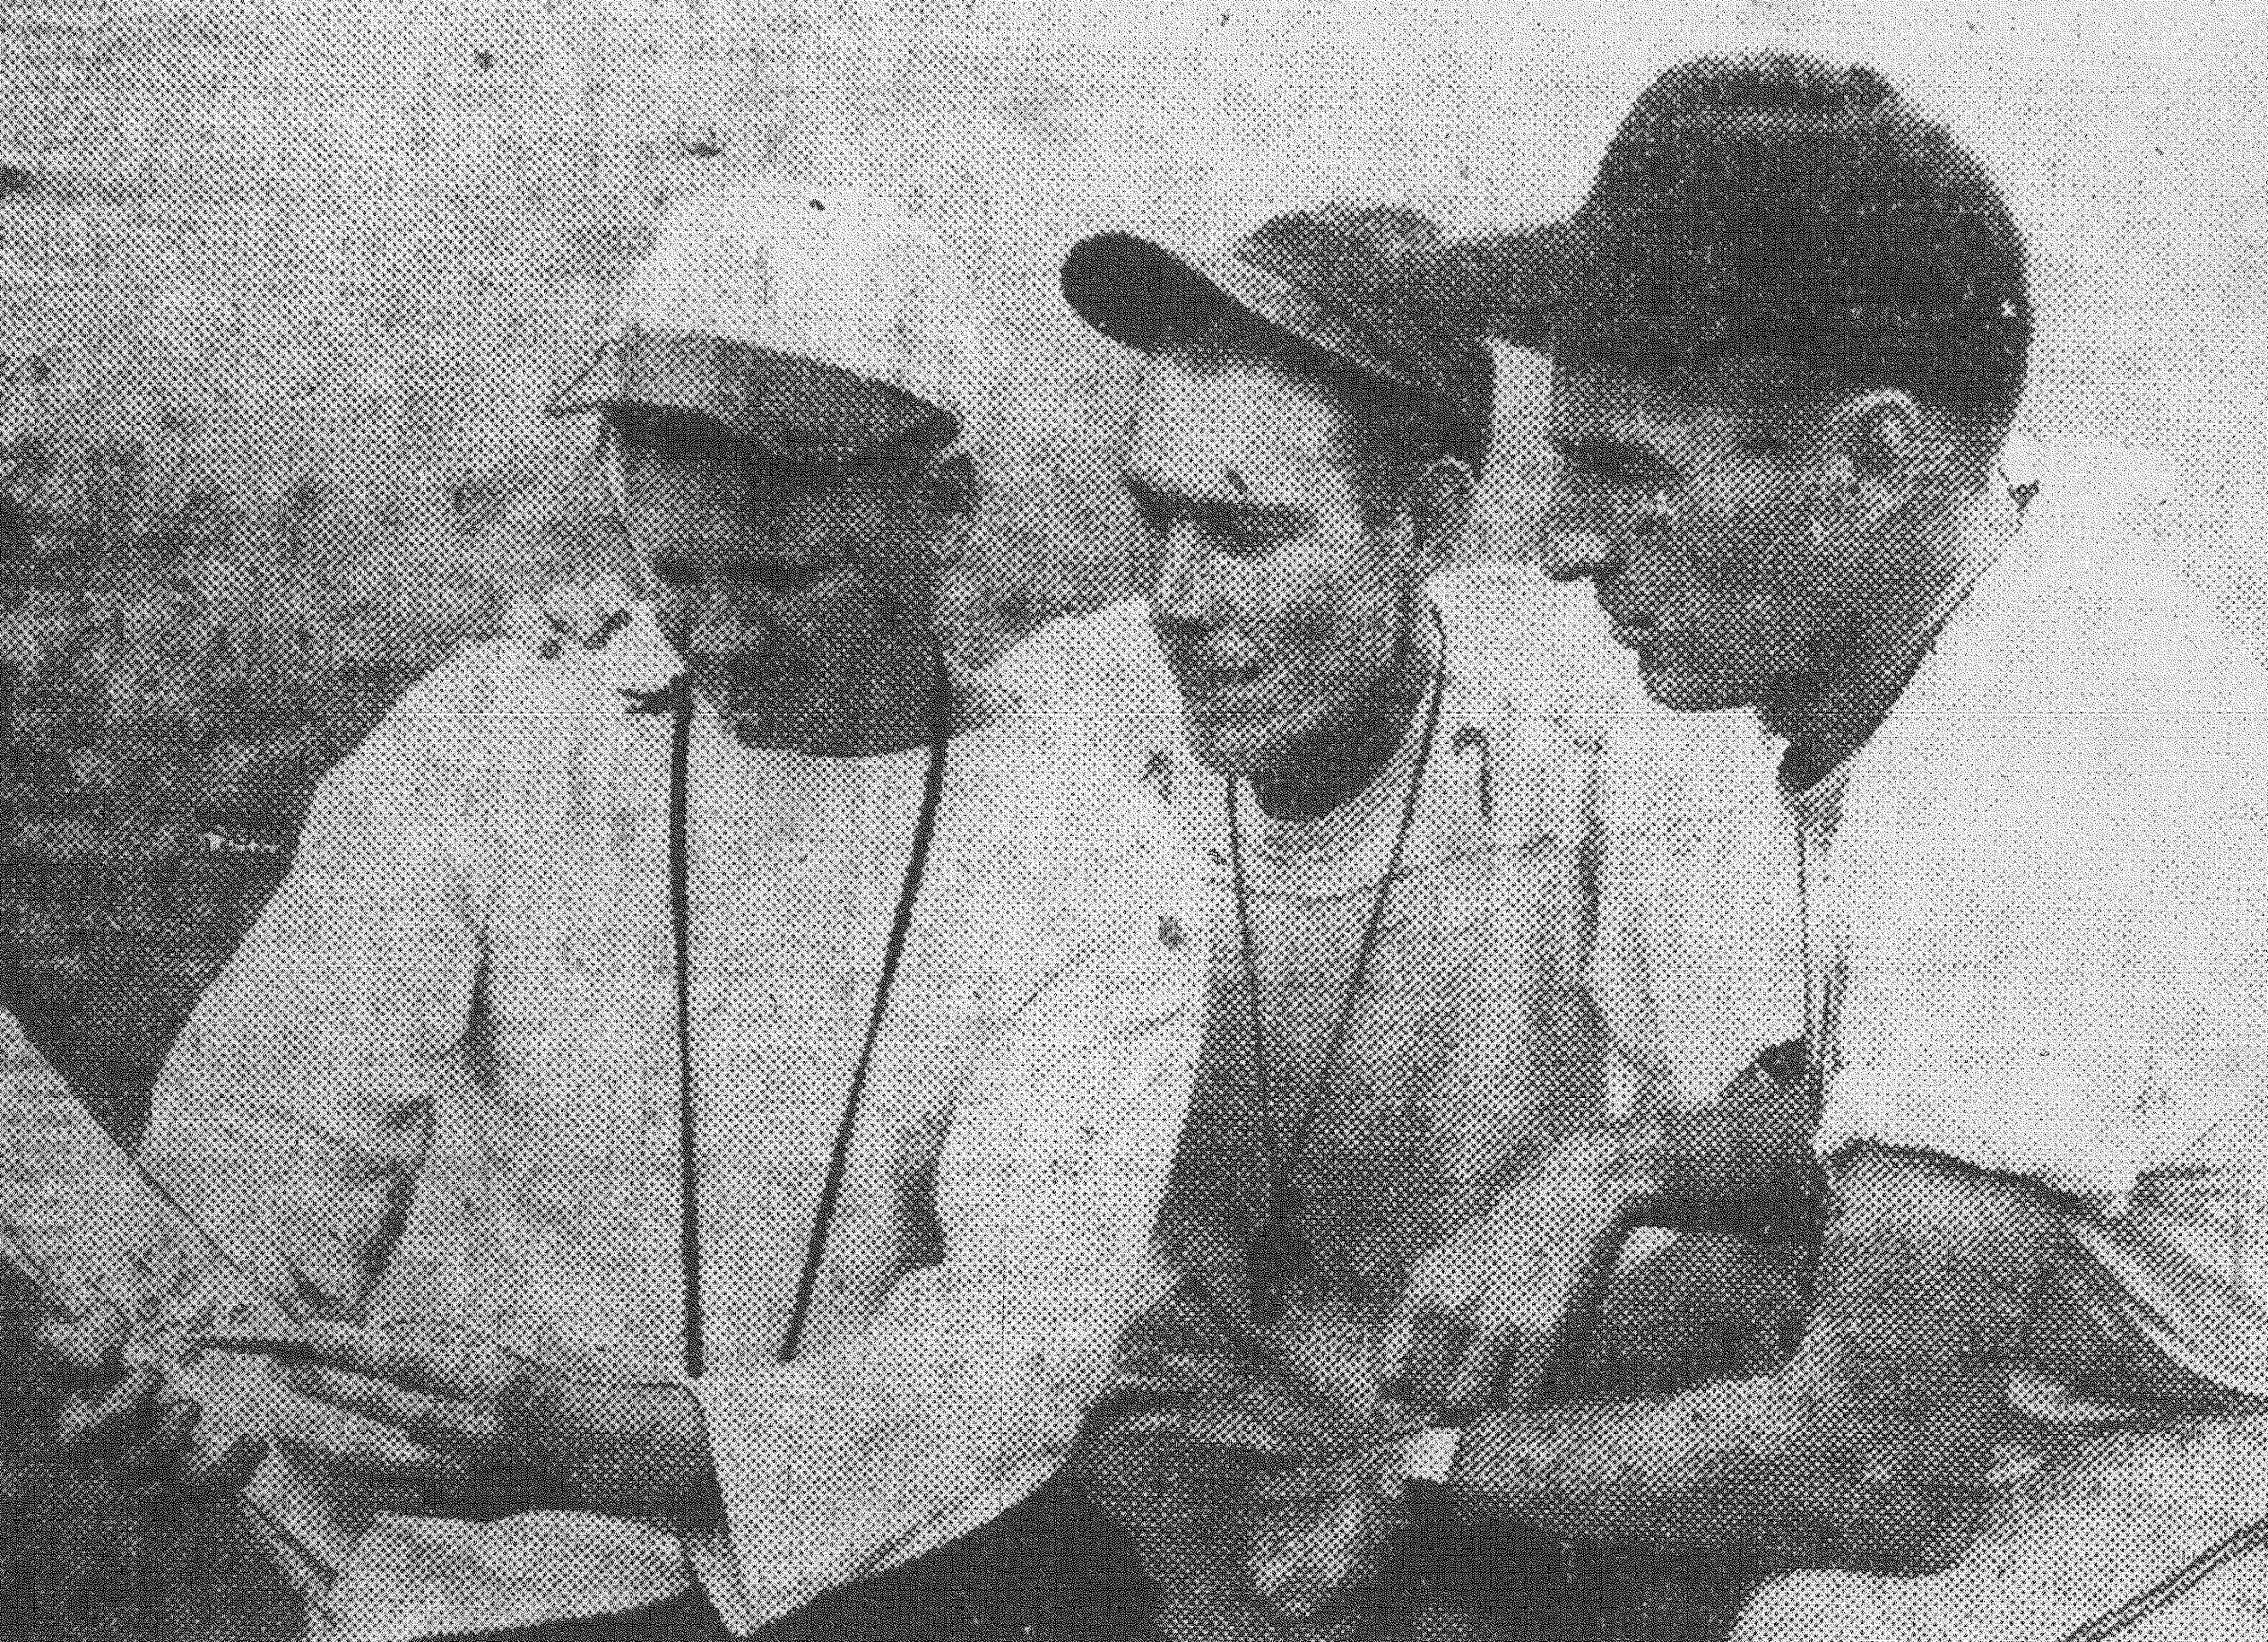 Football plays are planned by, from left, Hutch Hutchinson, head coach, and assistants Earle J. Moore and Barney S. Haynes.